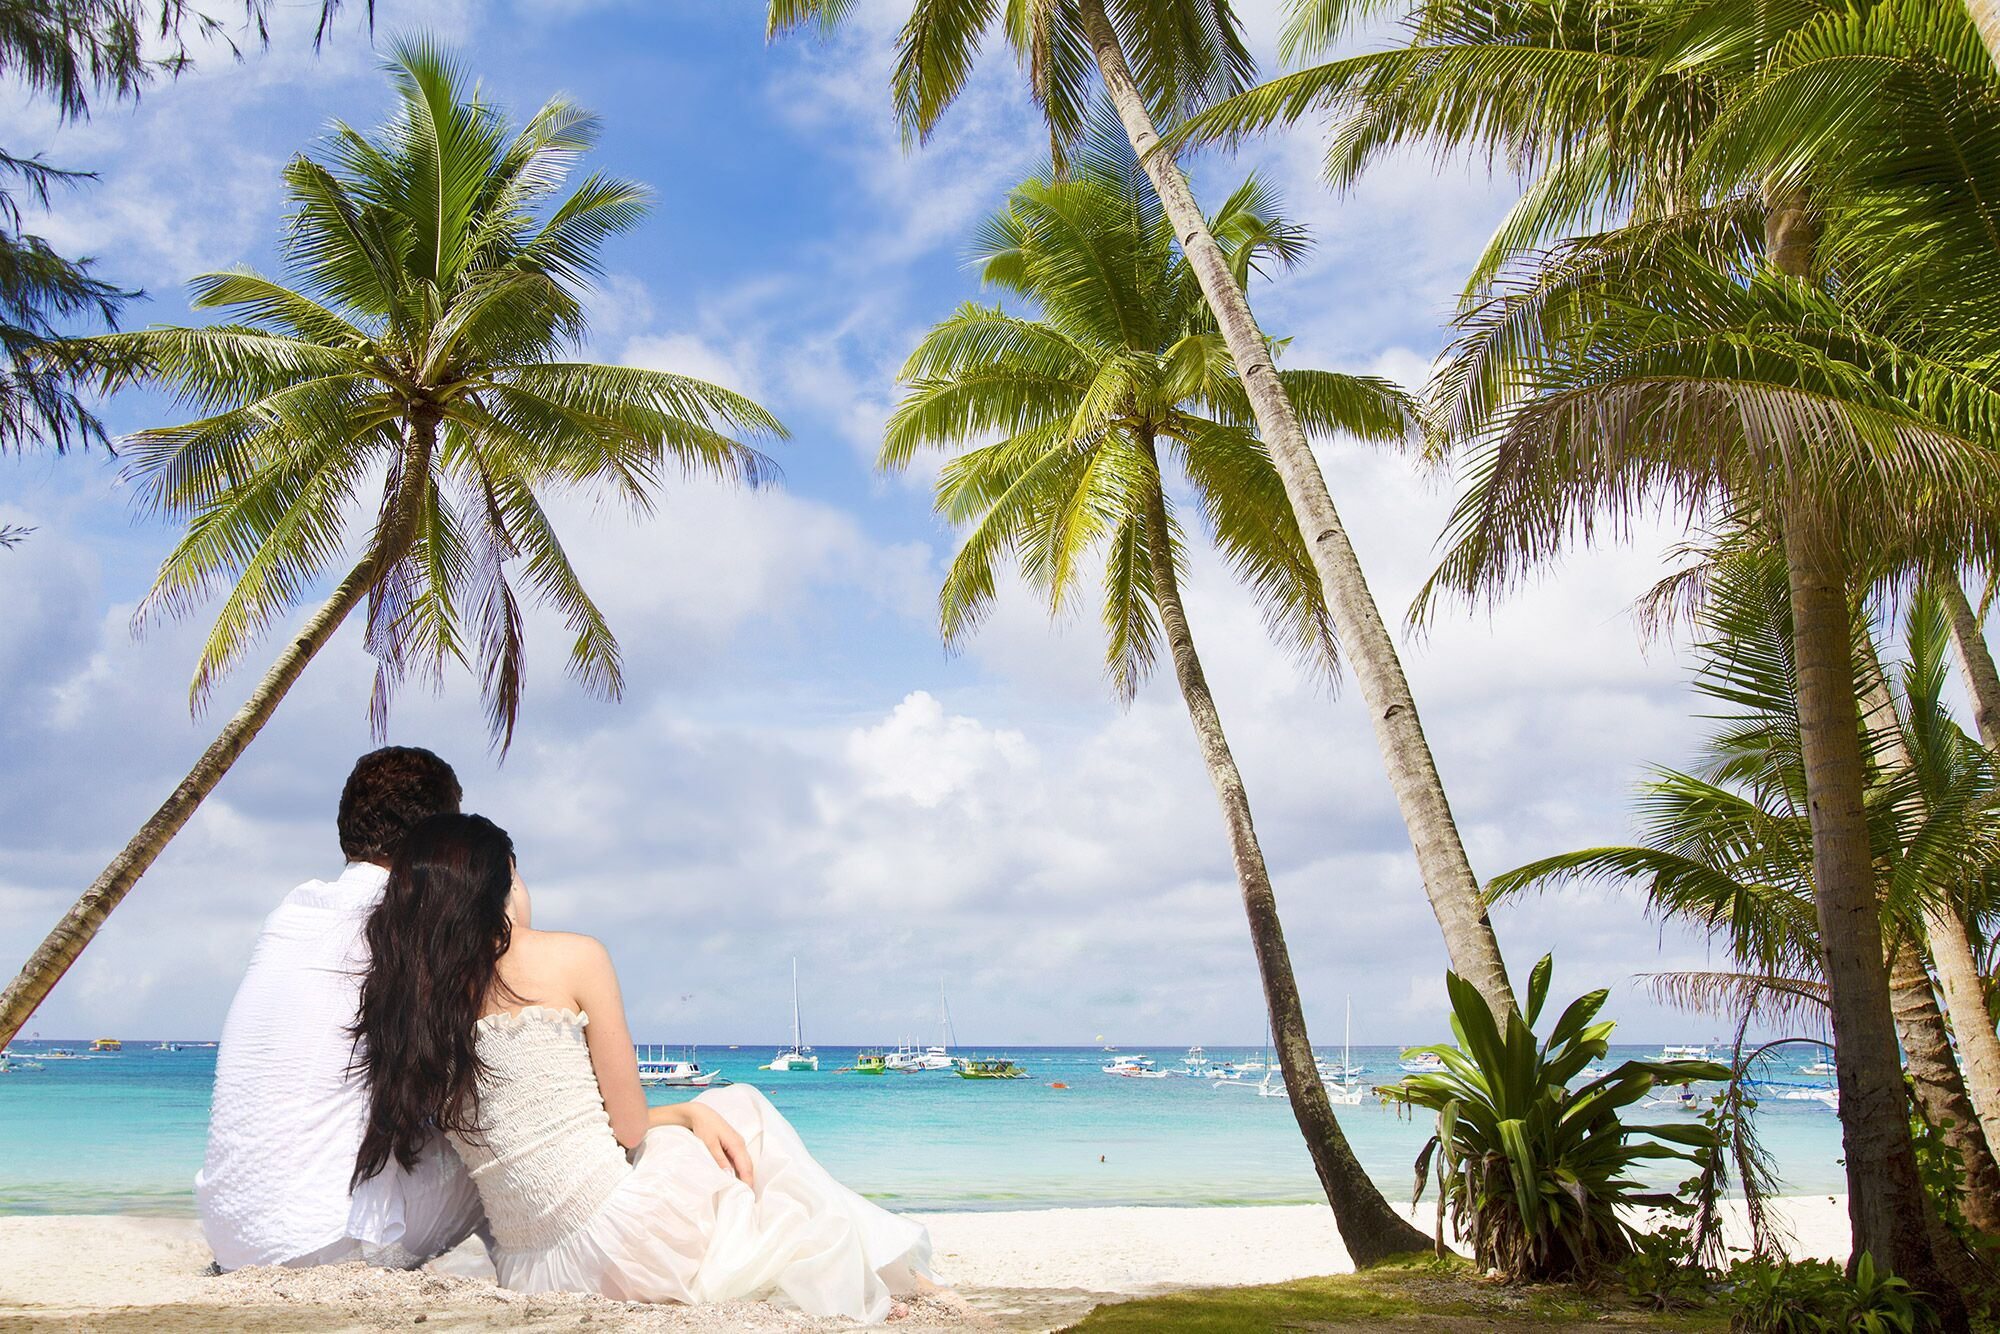 Destination Wedding Cost How Much Is A Destination Wedding